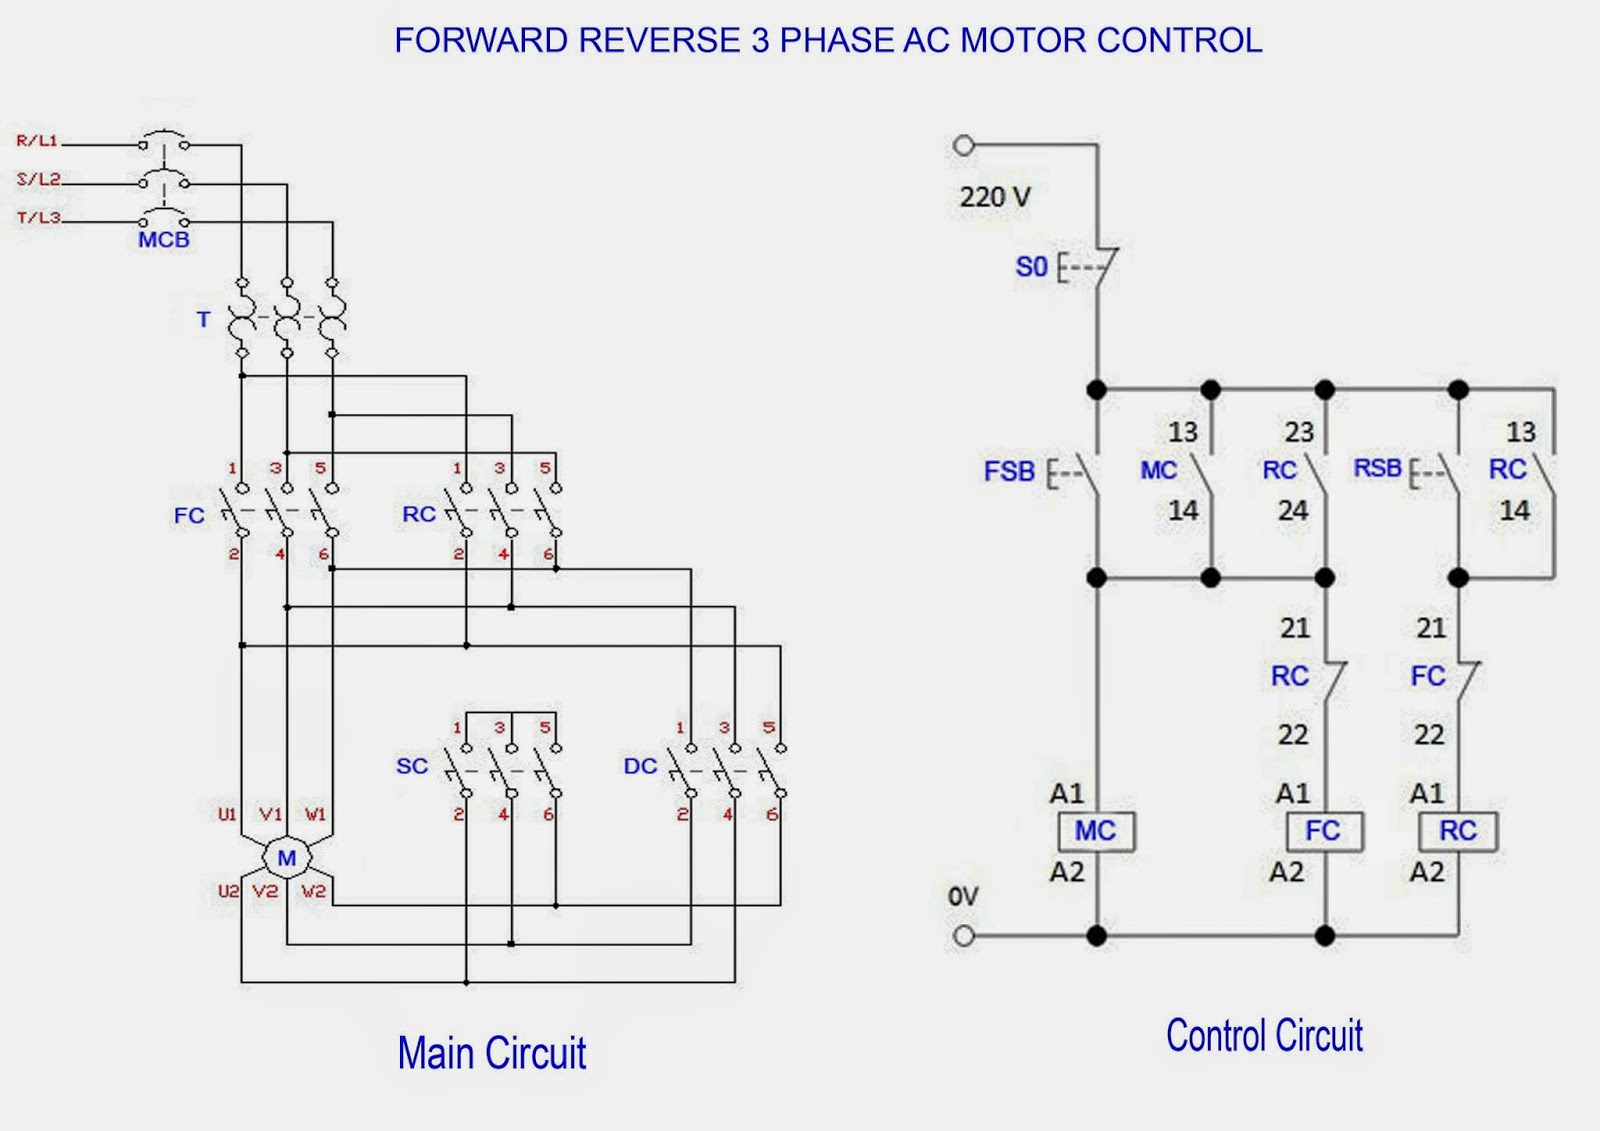 small motors for ac wiring diagram